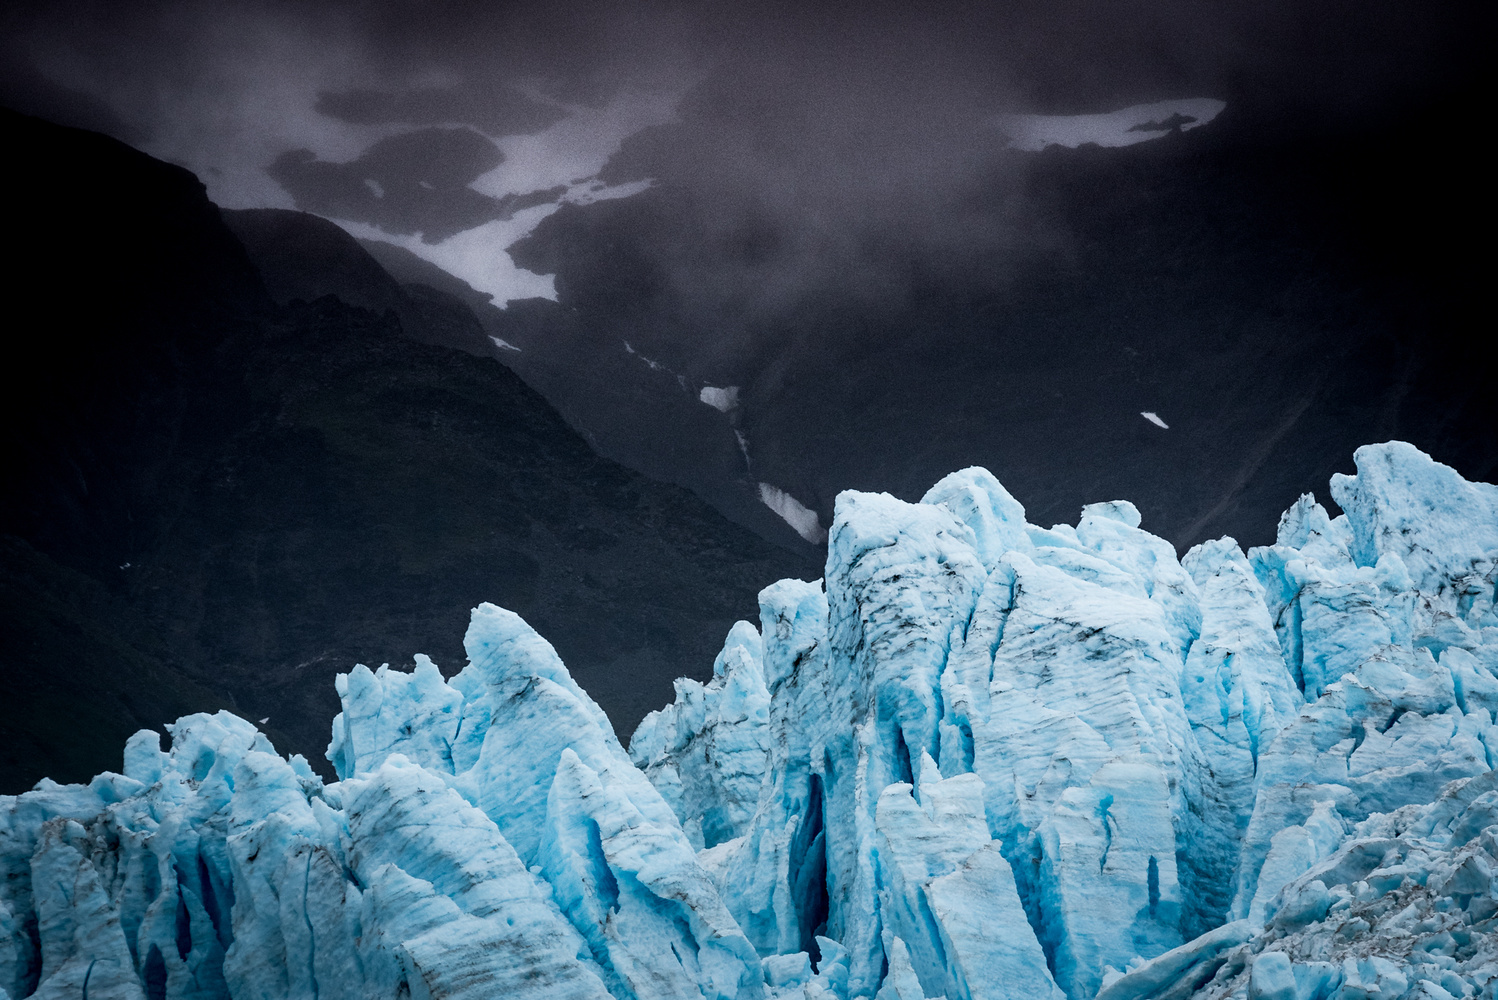 Ice is Blue, who Knew? by Roger Moffatt